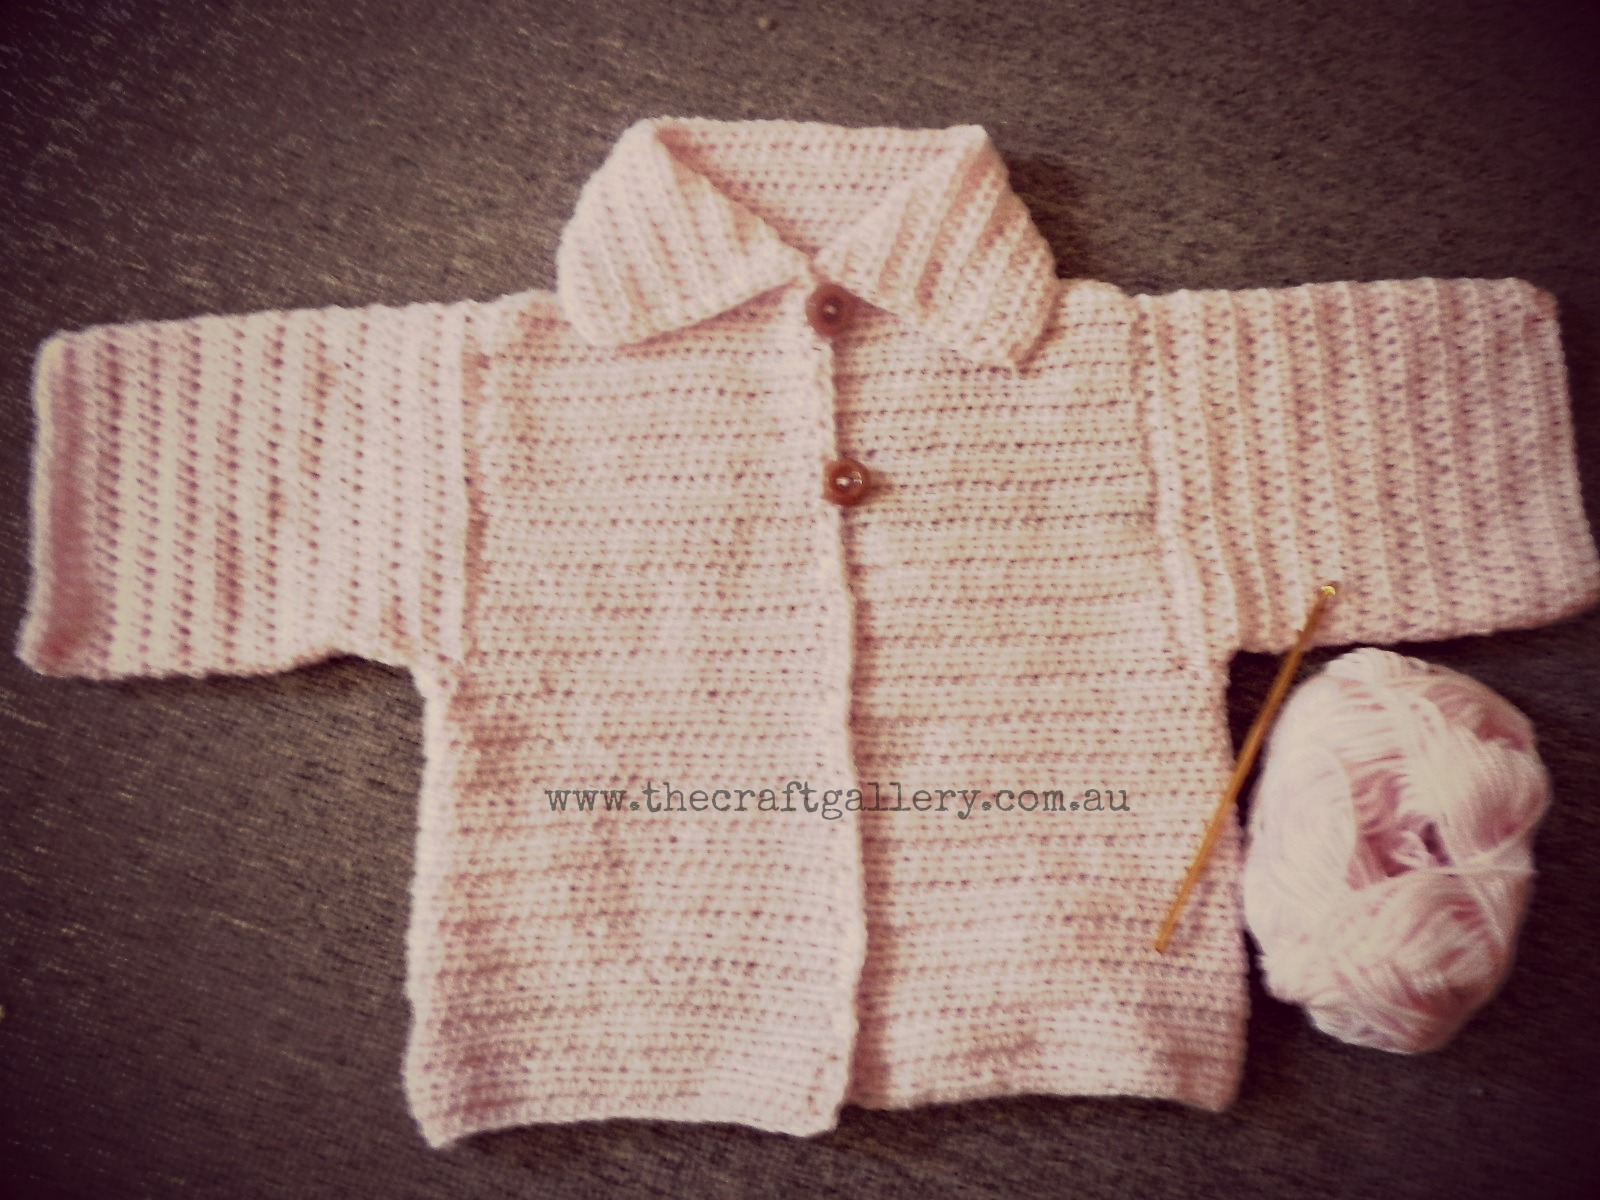 Knitting Pattern Cardigan 4 Year Old : The Craft Gallery : Crochet Cardigan for 3-4 year old